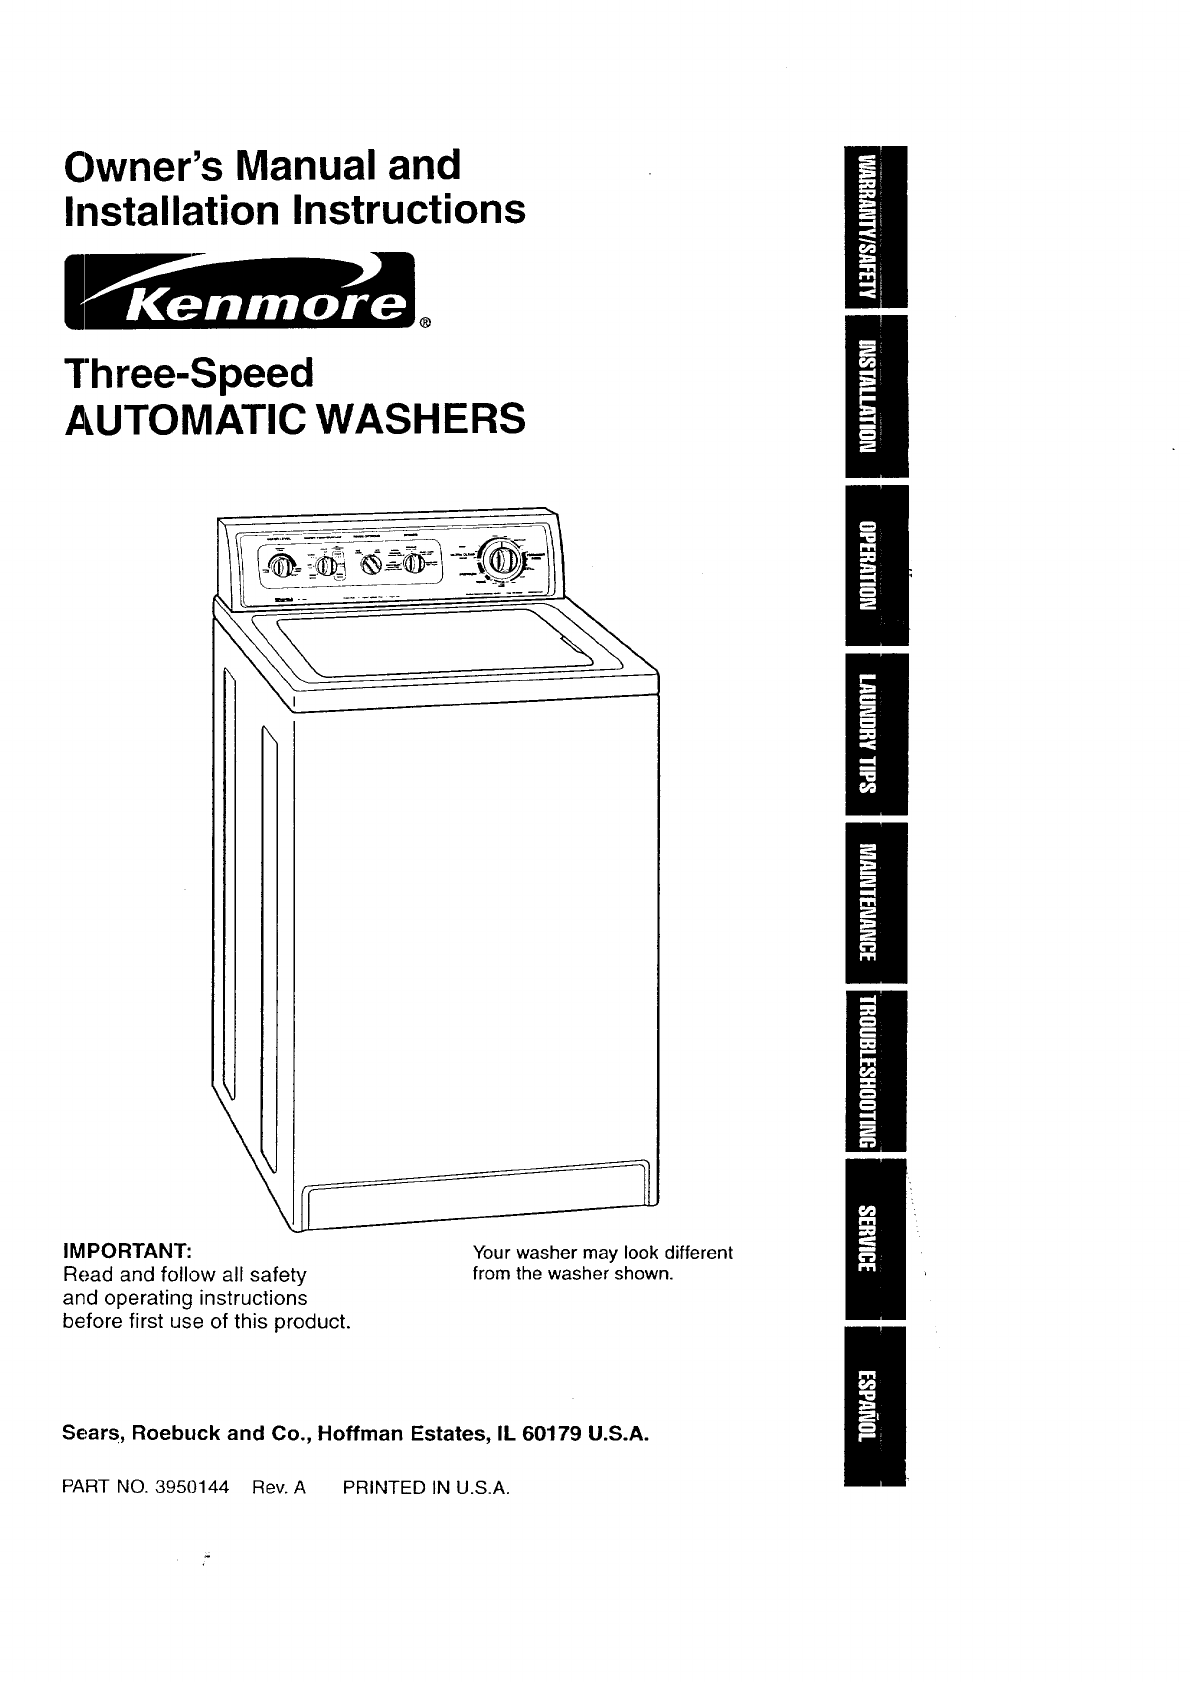 kenmore washer automatic washers user guide manualsonline com rh kitchen manualsonline com Townsen Rober Meter Man Manual Meter- Reading